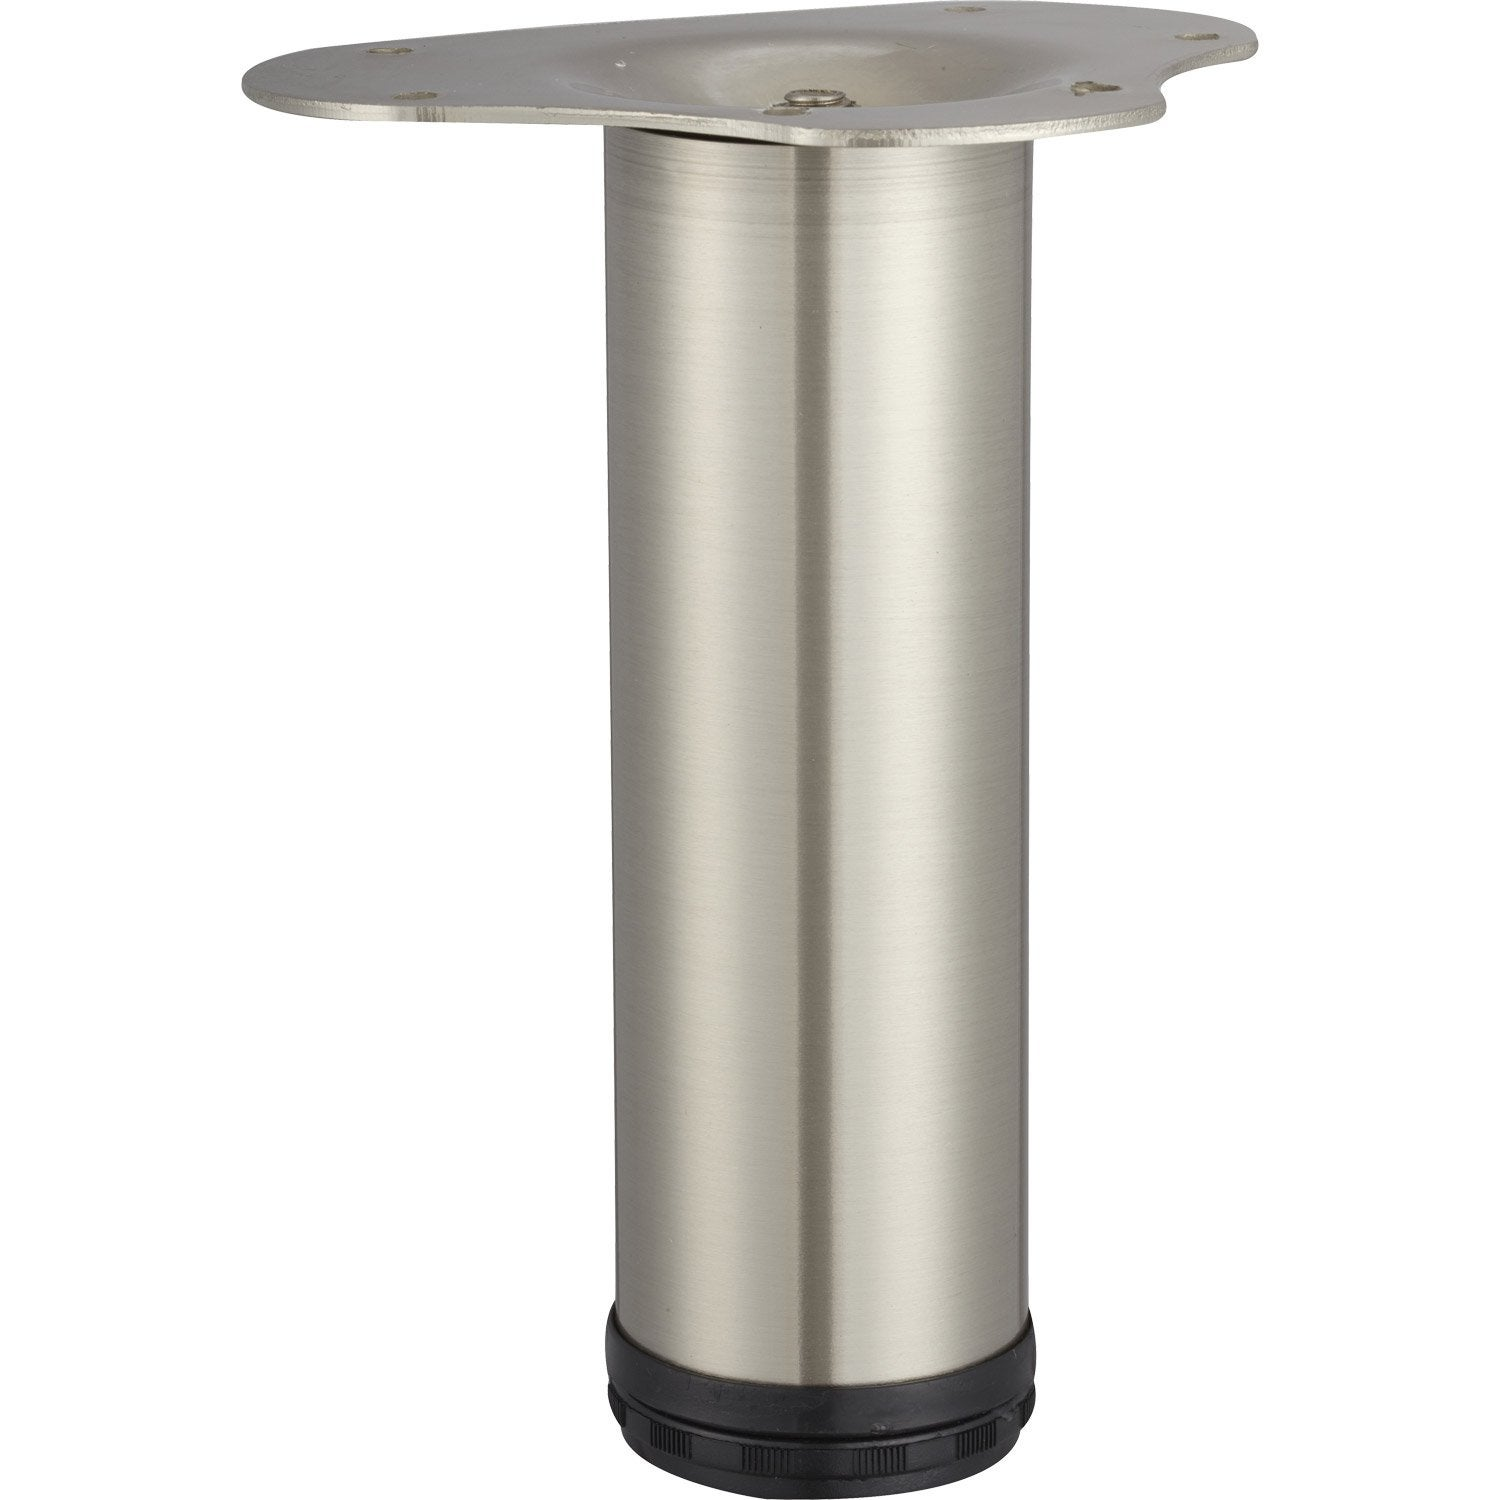 Pied de table basse cylindrique r glable acier bross gris - Pied de table central inox ...